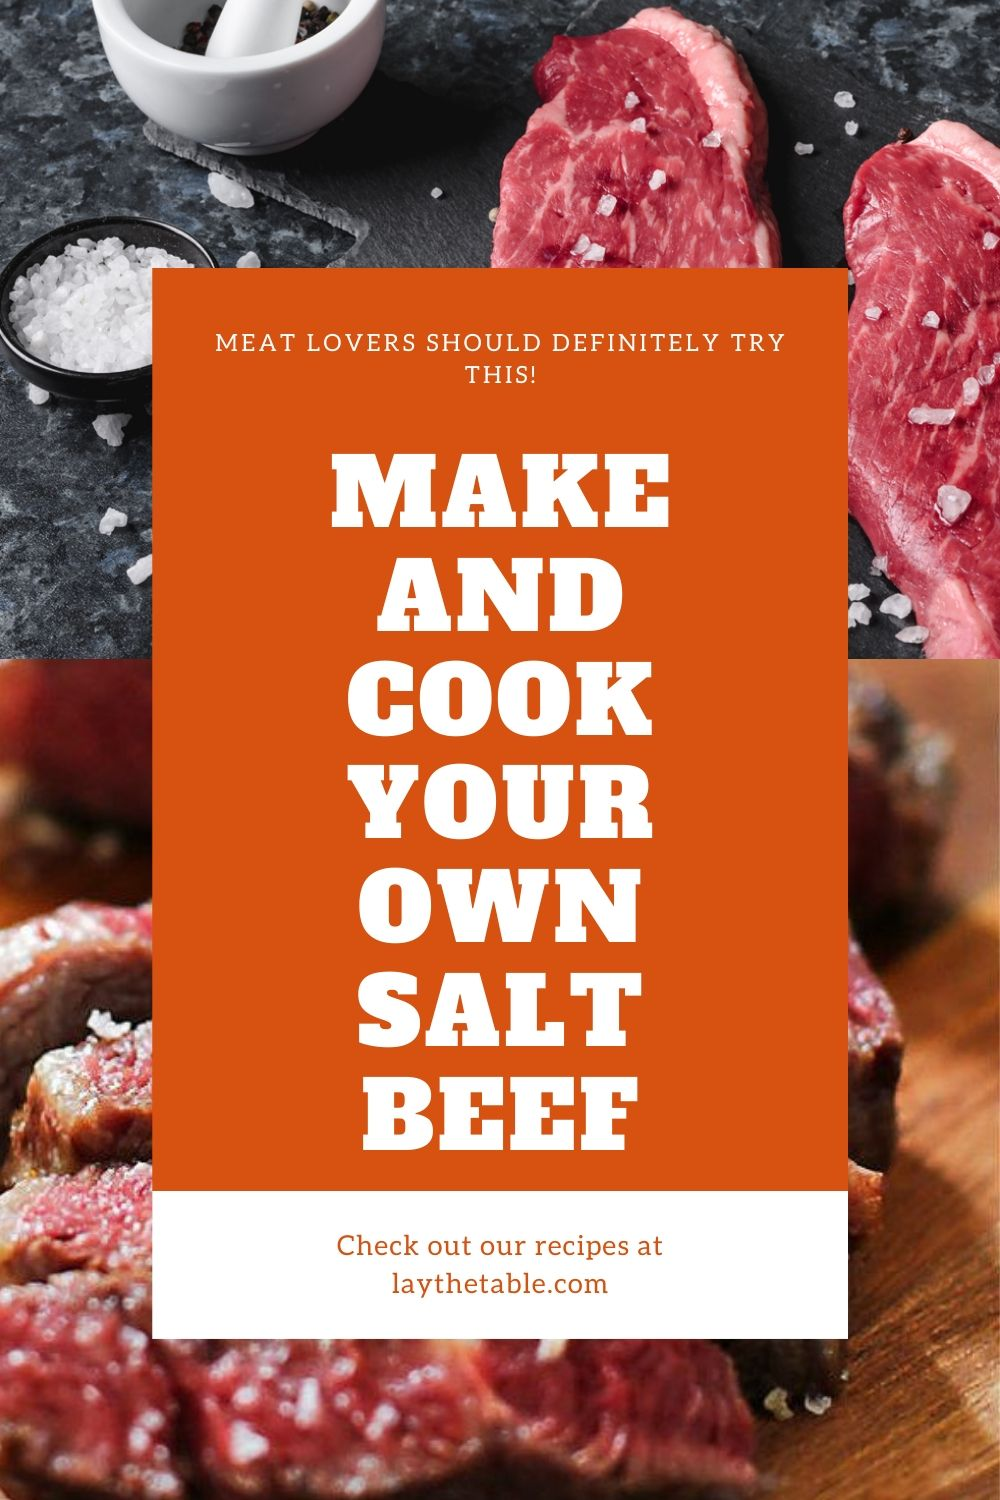 Make And Cook Your Own Salt Beef, Lay The Table